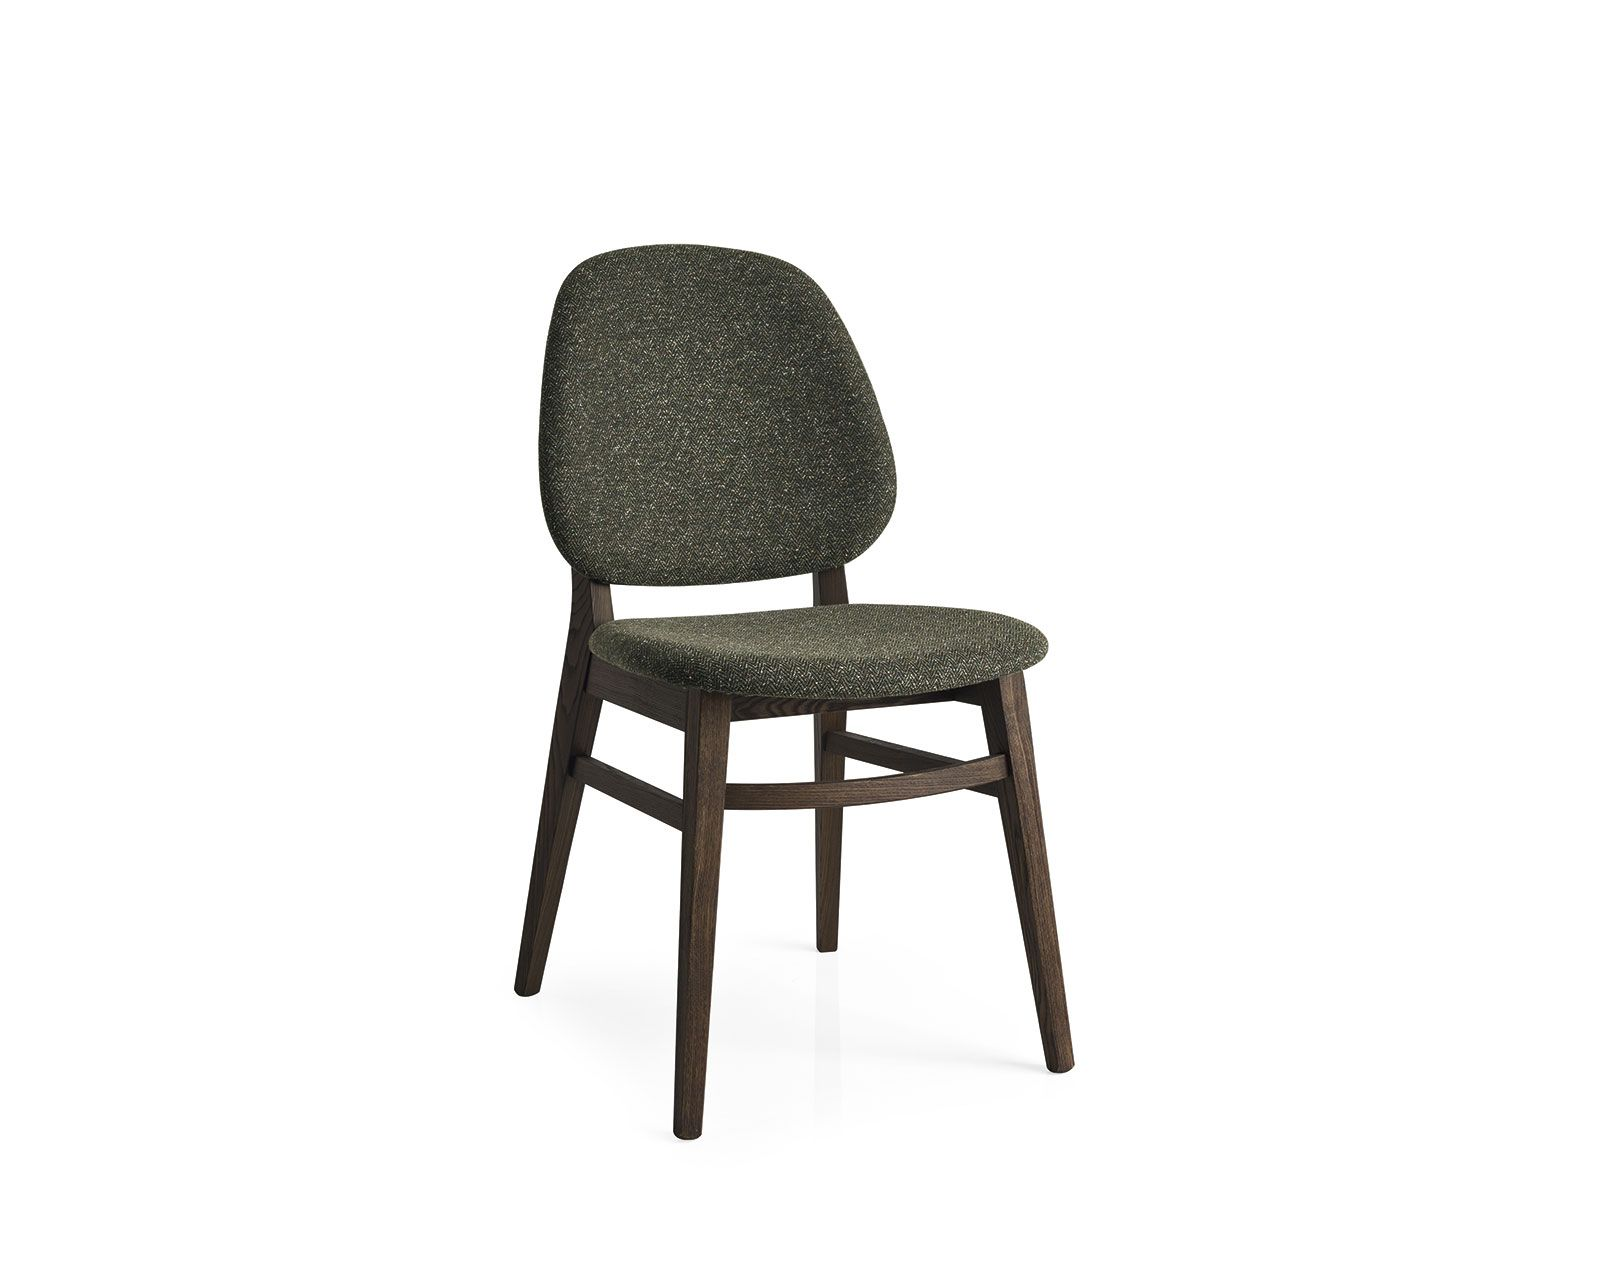 Calligaris Colette Dining Chair   Sleek And Practical, The Calligaris  Colette Dining Chair Is Sure To Serve You Well. This Dining Chair Includes  A Wooden ...